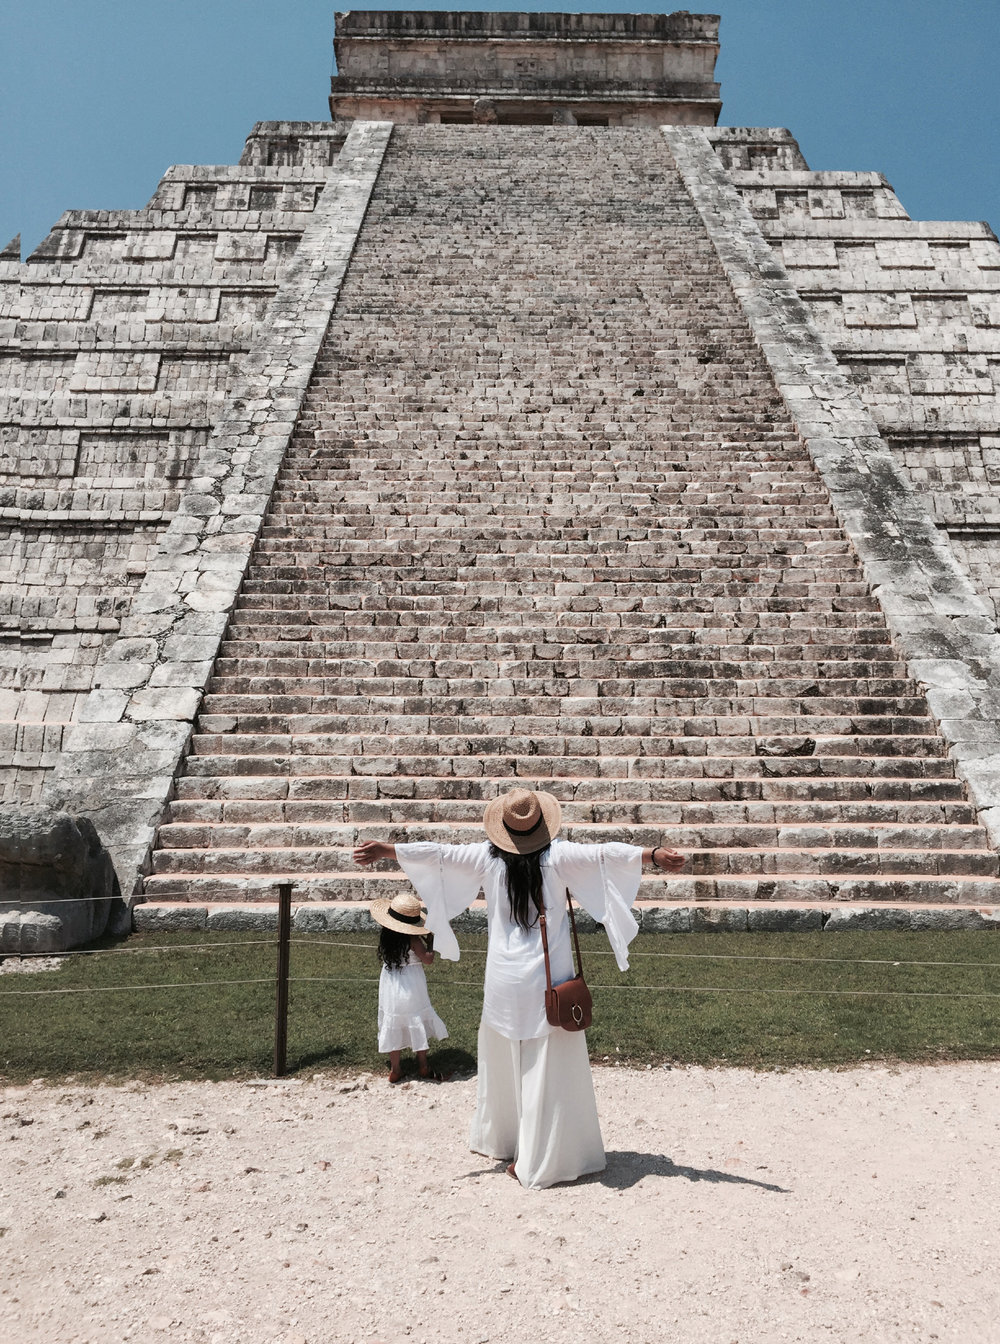 CHICHEN ITZA RUINS {Yucatan} - One of the new 7 wonders of the world.{Tip: Another